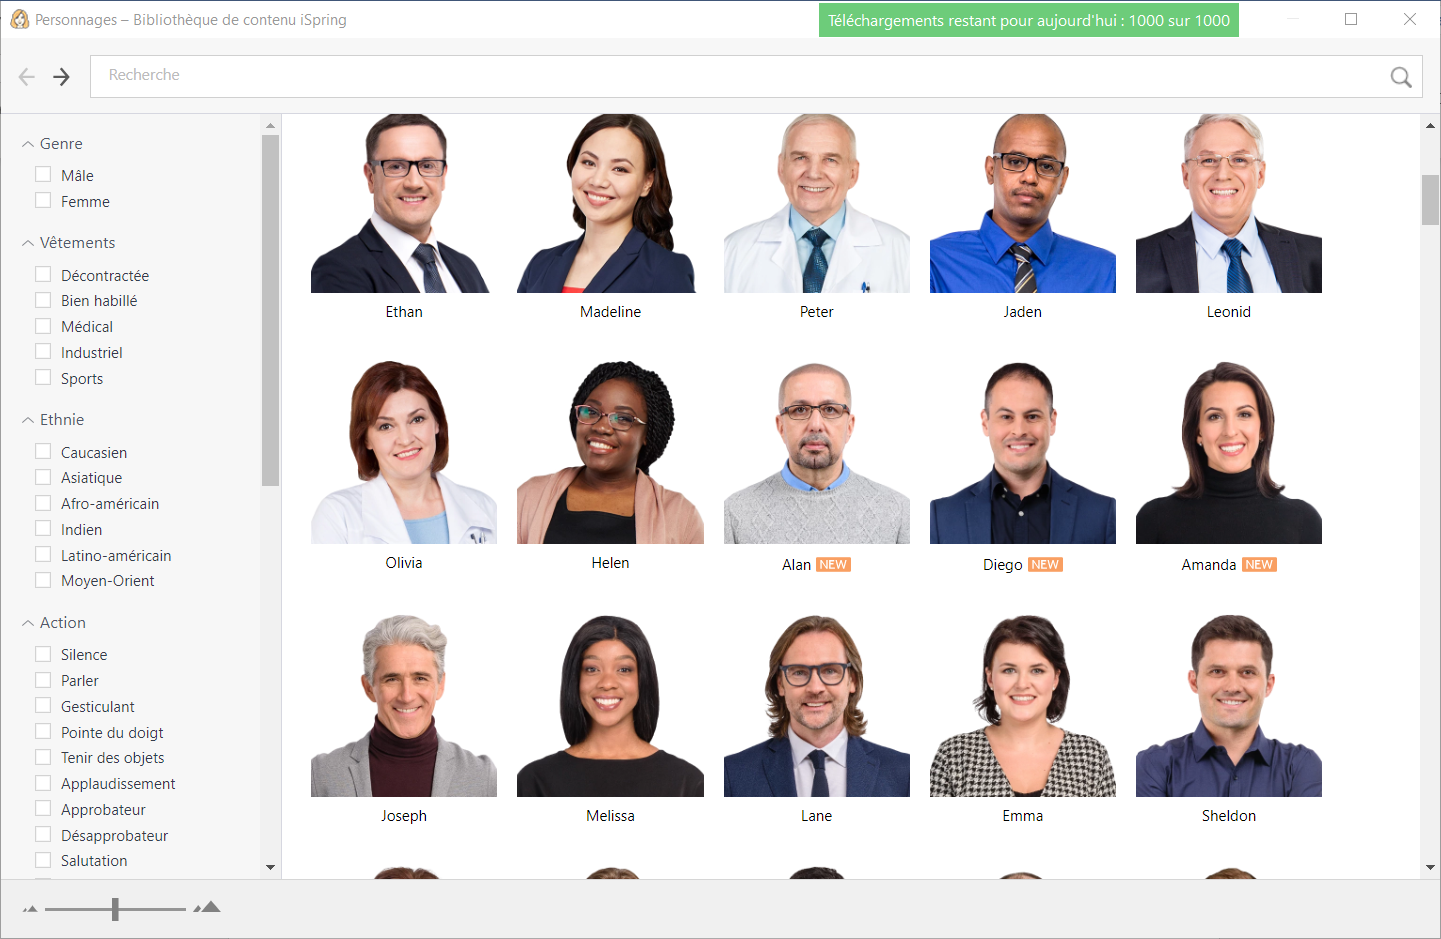 ispring bibliotheque personnages